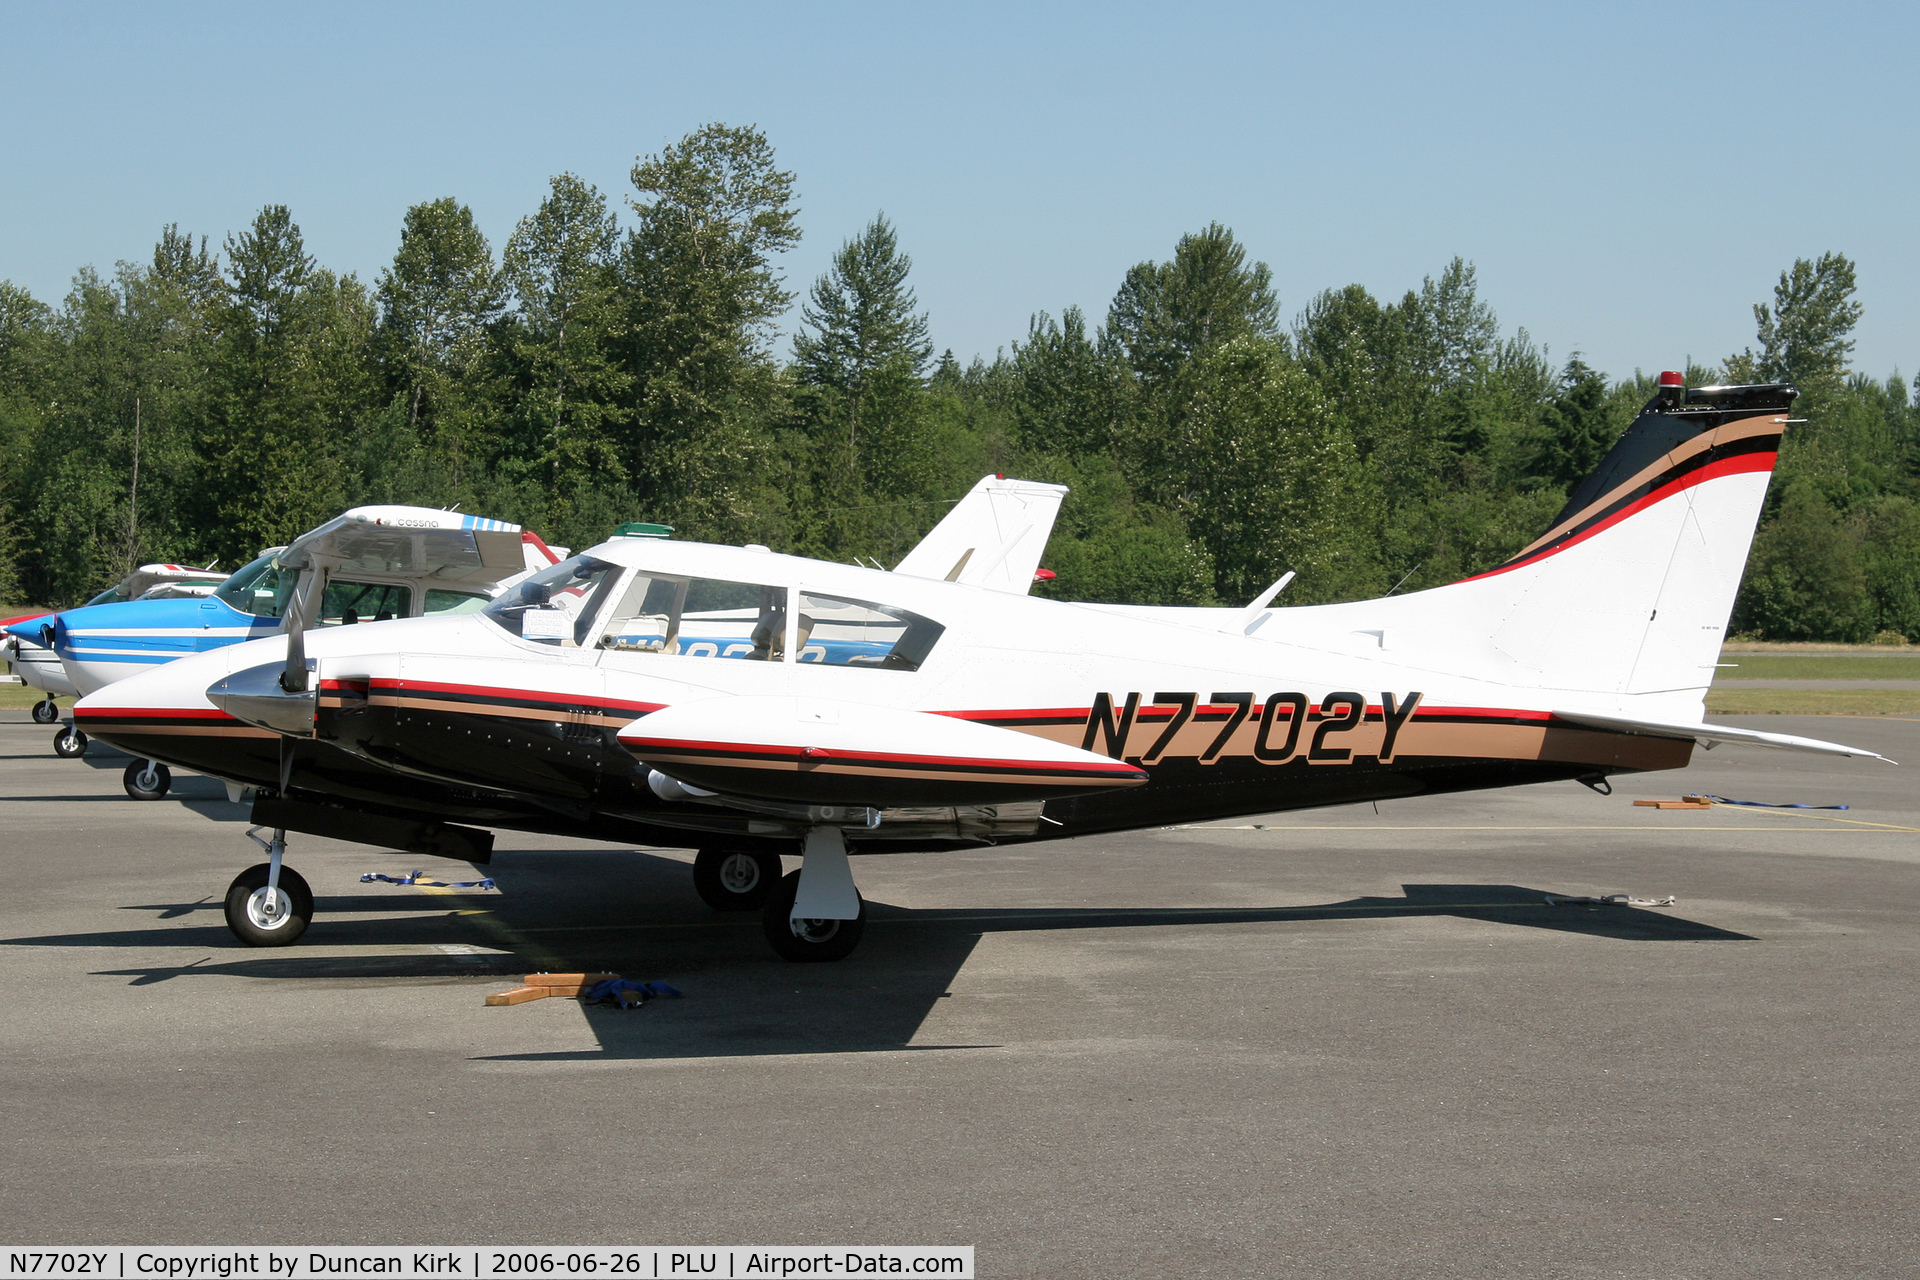 N7702Y, 1965 Piper PA-30 C/N 30-788, Very nice Twin Comanche